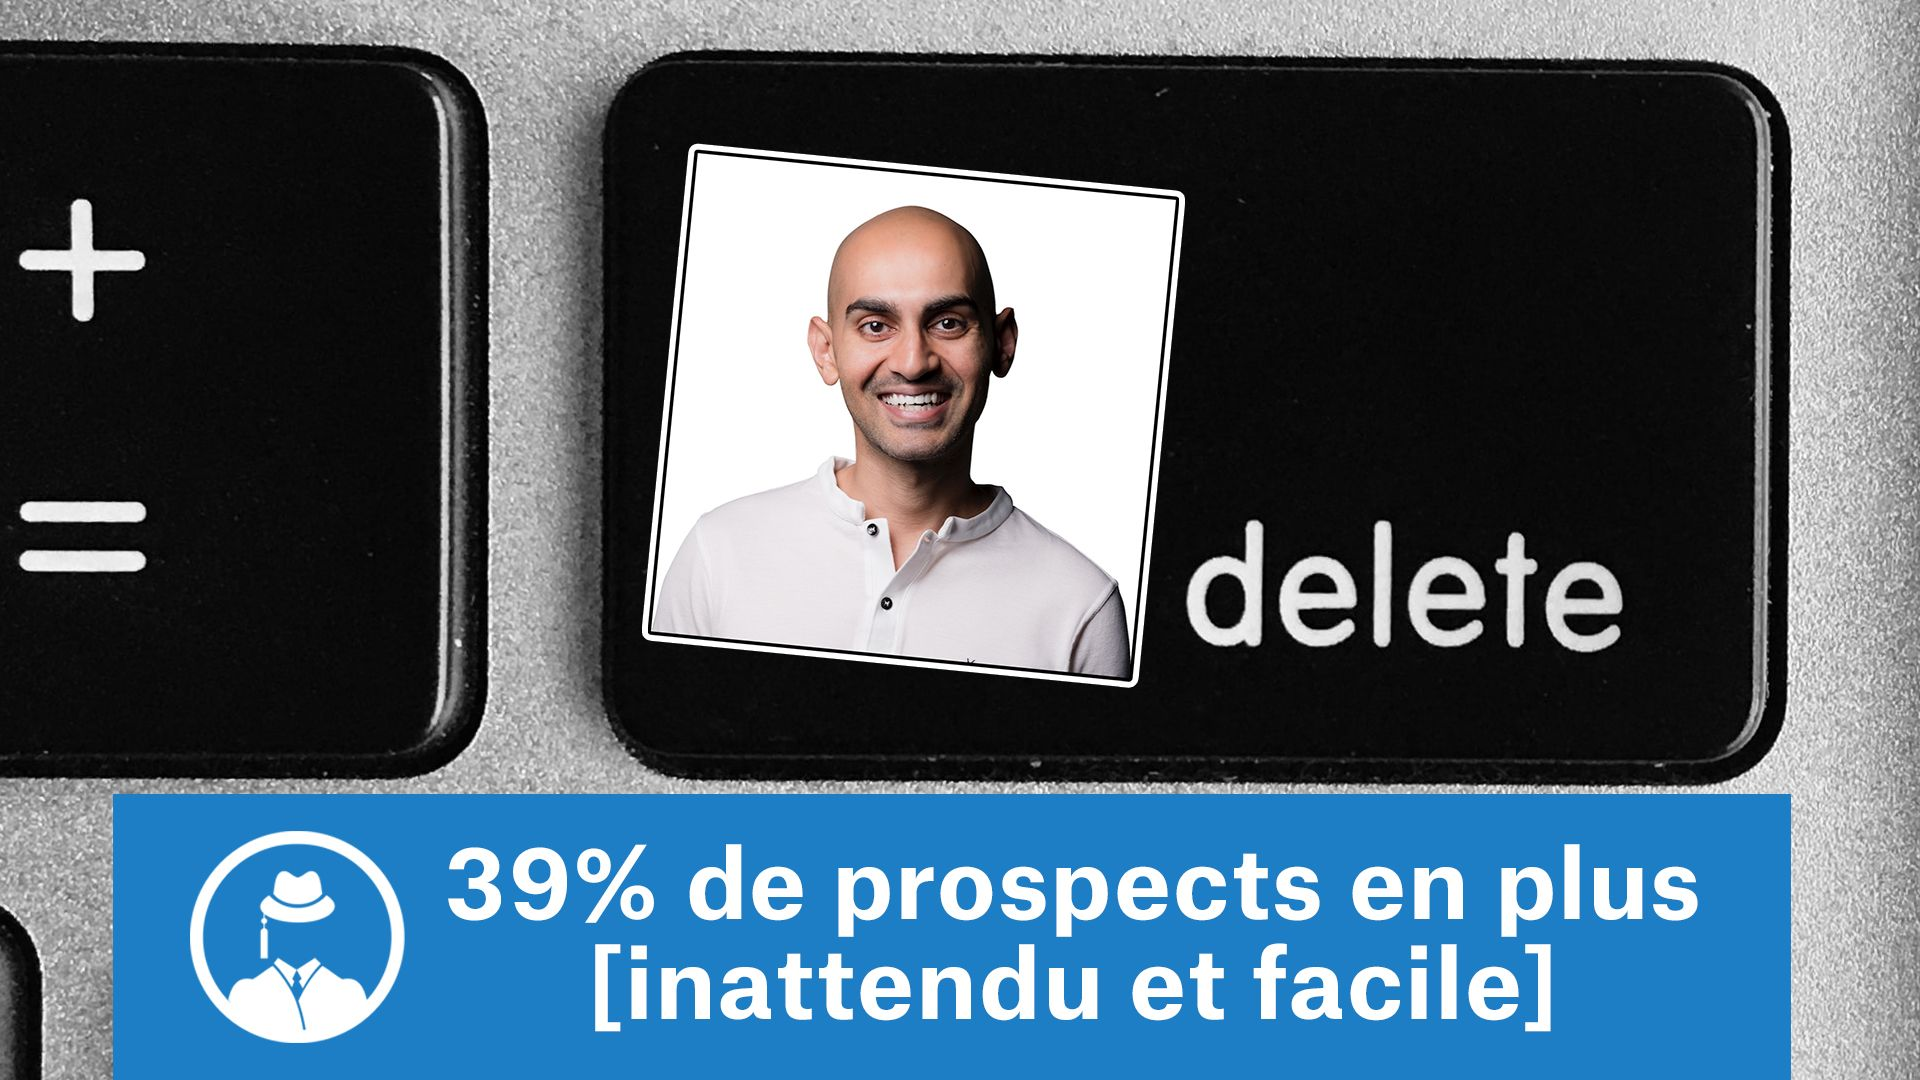 39% de prospects en plus [inattendu et facile] #GrowthHacking #WebMarketing #FormationGrowthHacking #CentreDeFormationFrance #TunnelAARRR #AARRR #SocialMedia #CommunityManagement #SEO #MarketingDigital #SiteWeb